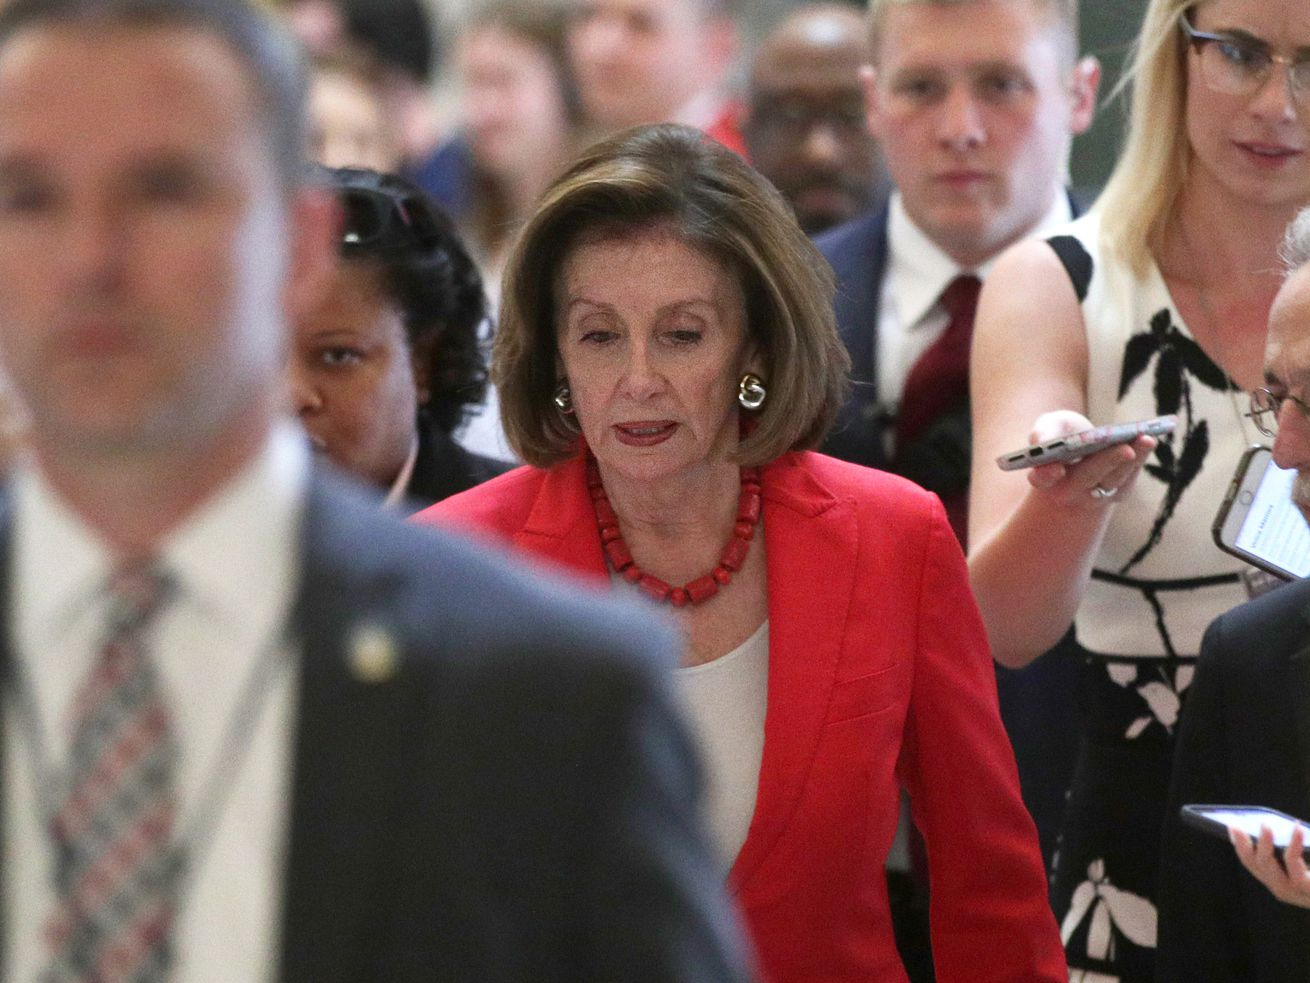 Speaker of the House Nancy Pelosi walks towards the House chamber for a vote on the border supplemental aid package on Thursday.